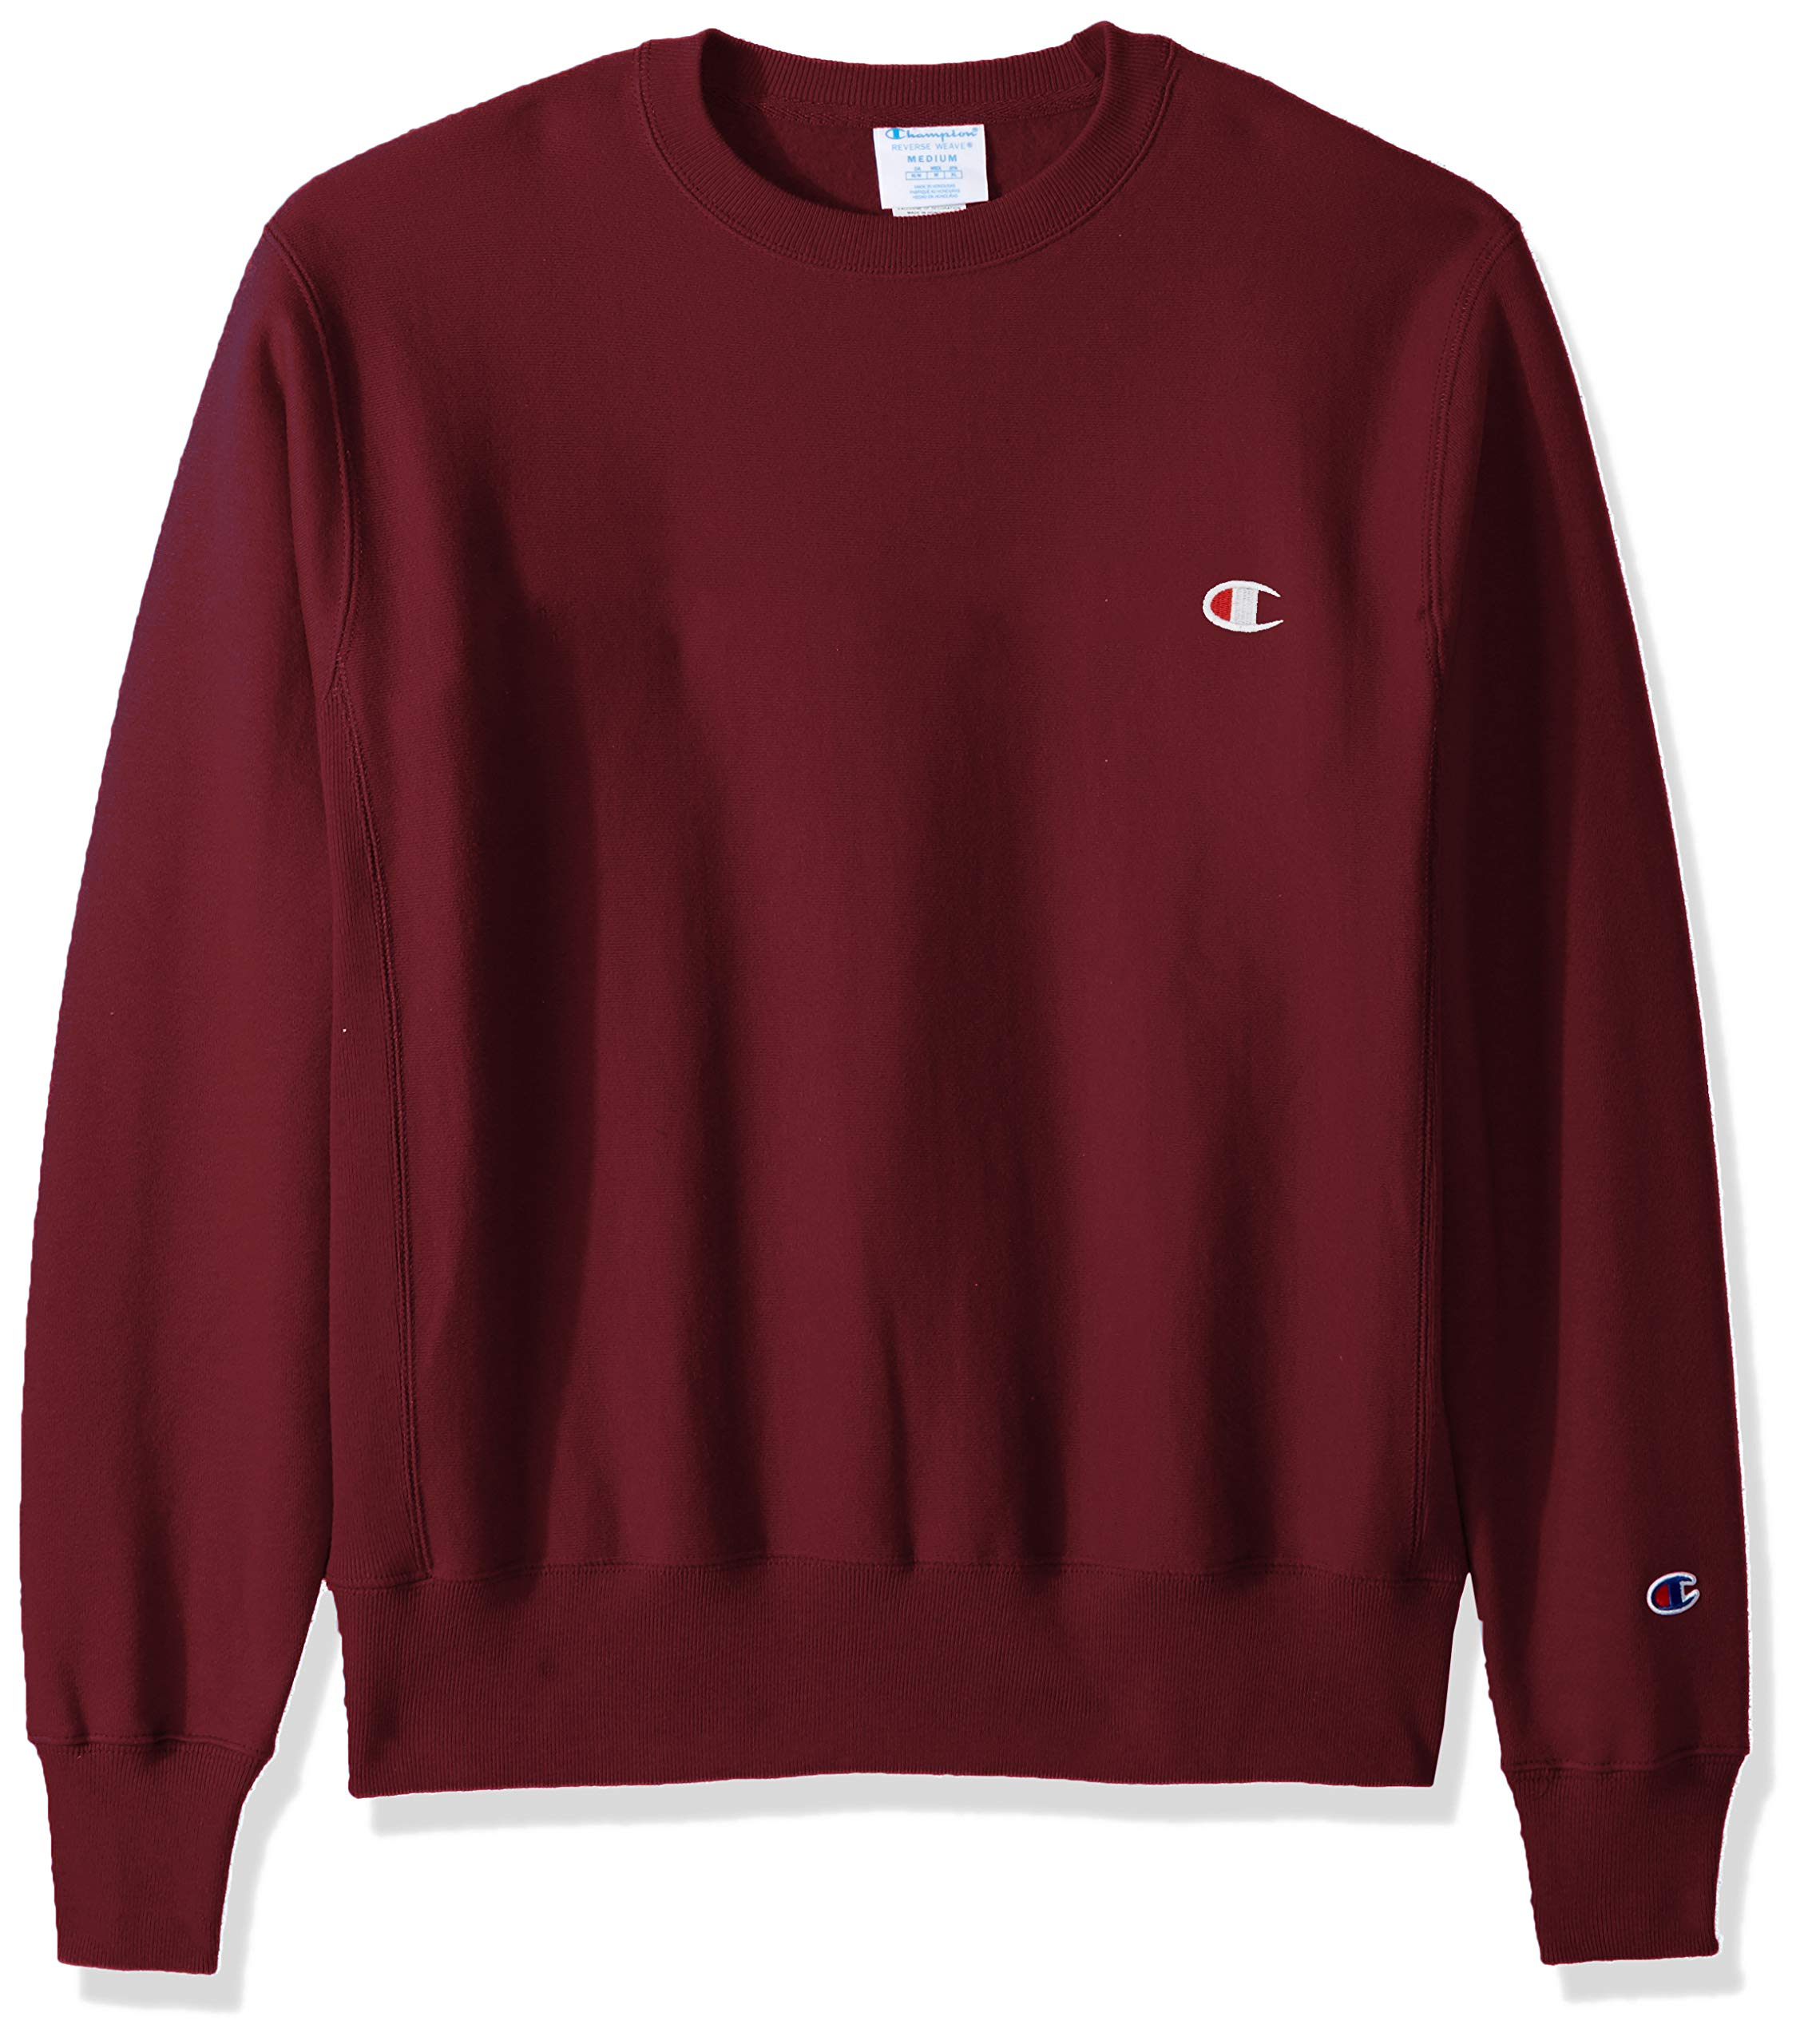 Champion LIFE Men's Reverse Weave Sweatshirt,mulled berry,2X LARGE by Champion LIFE